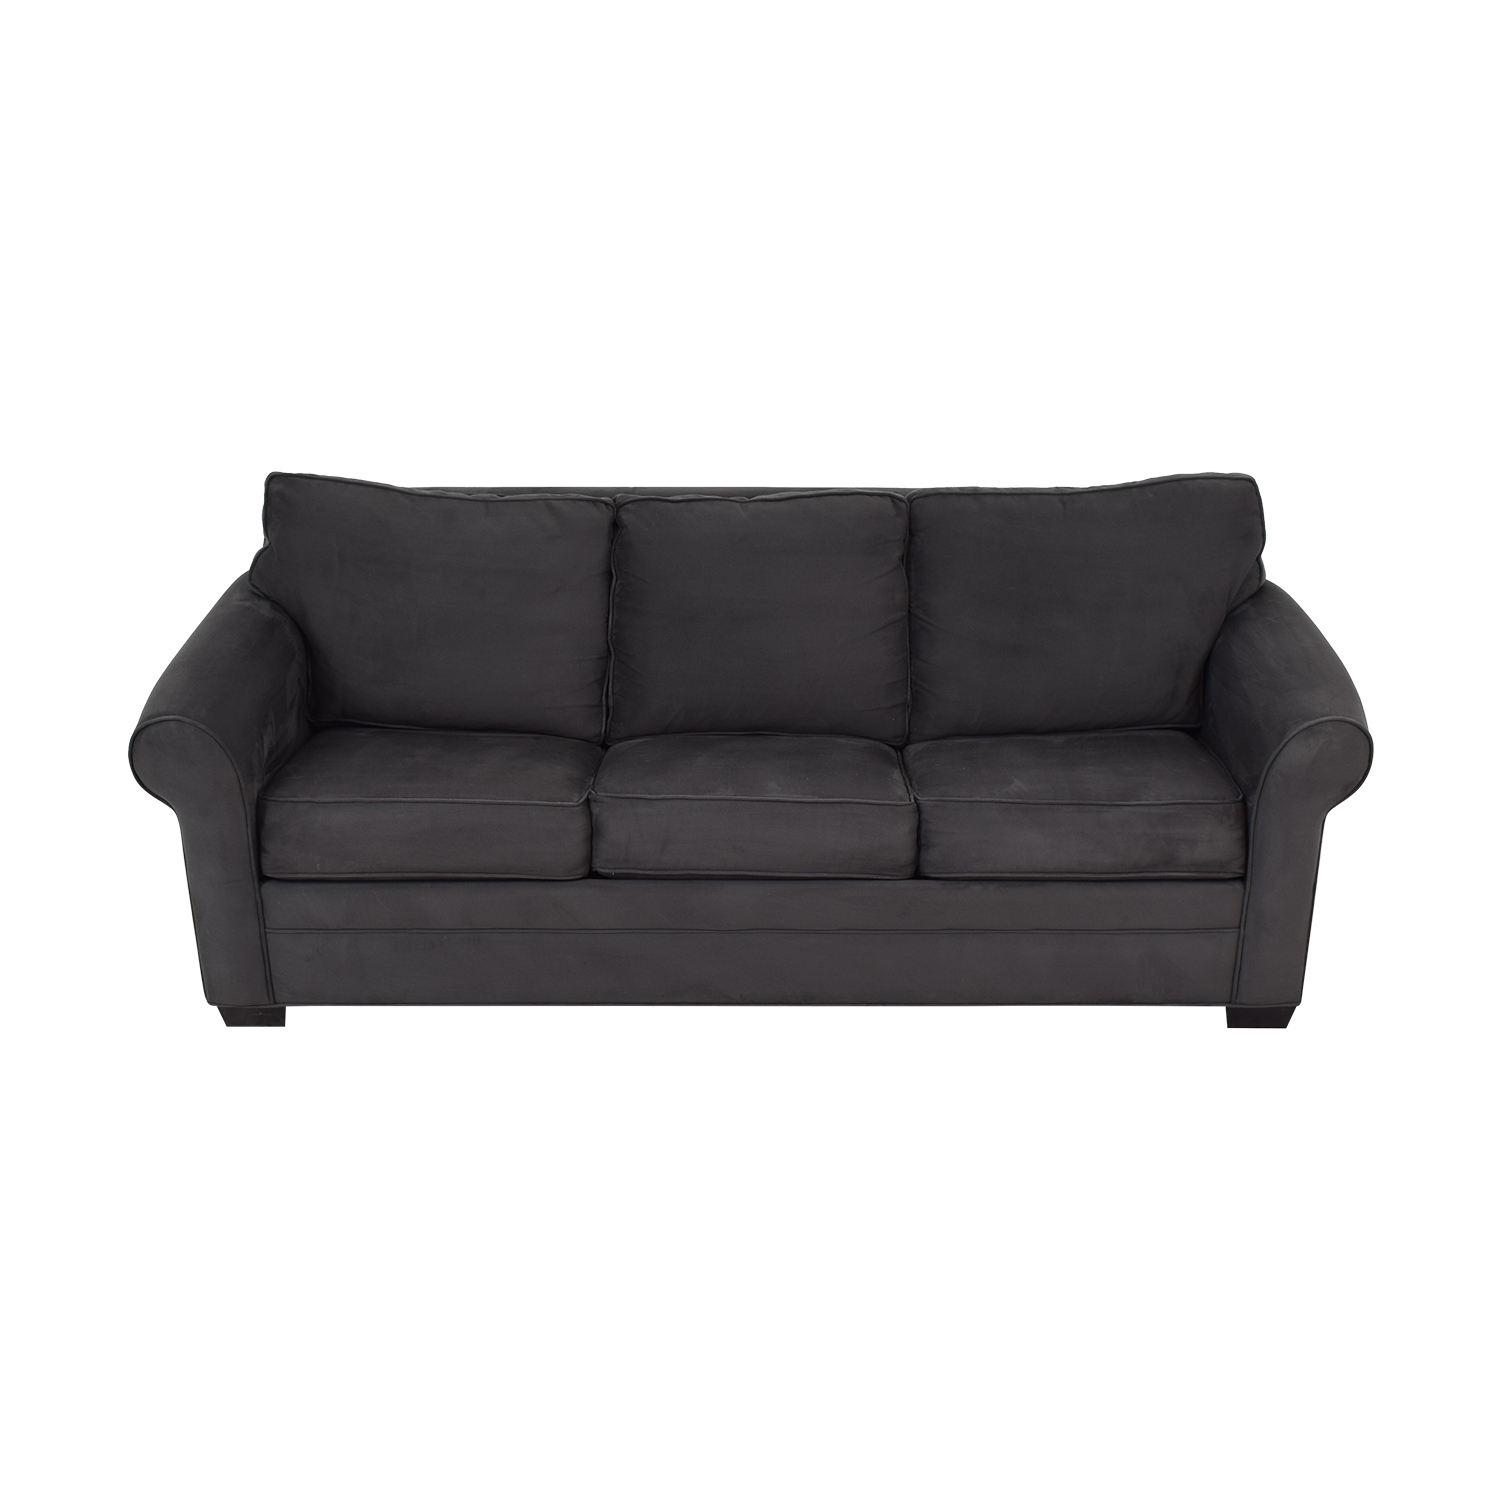 Cindy Crawford Home Grey Microfiber Sleeper Sofa sale